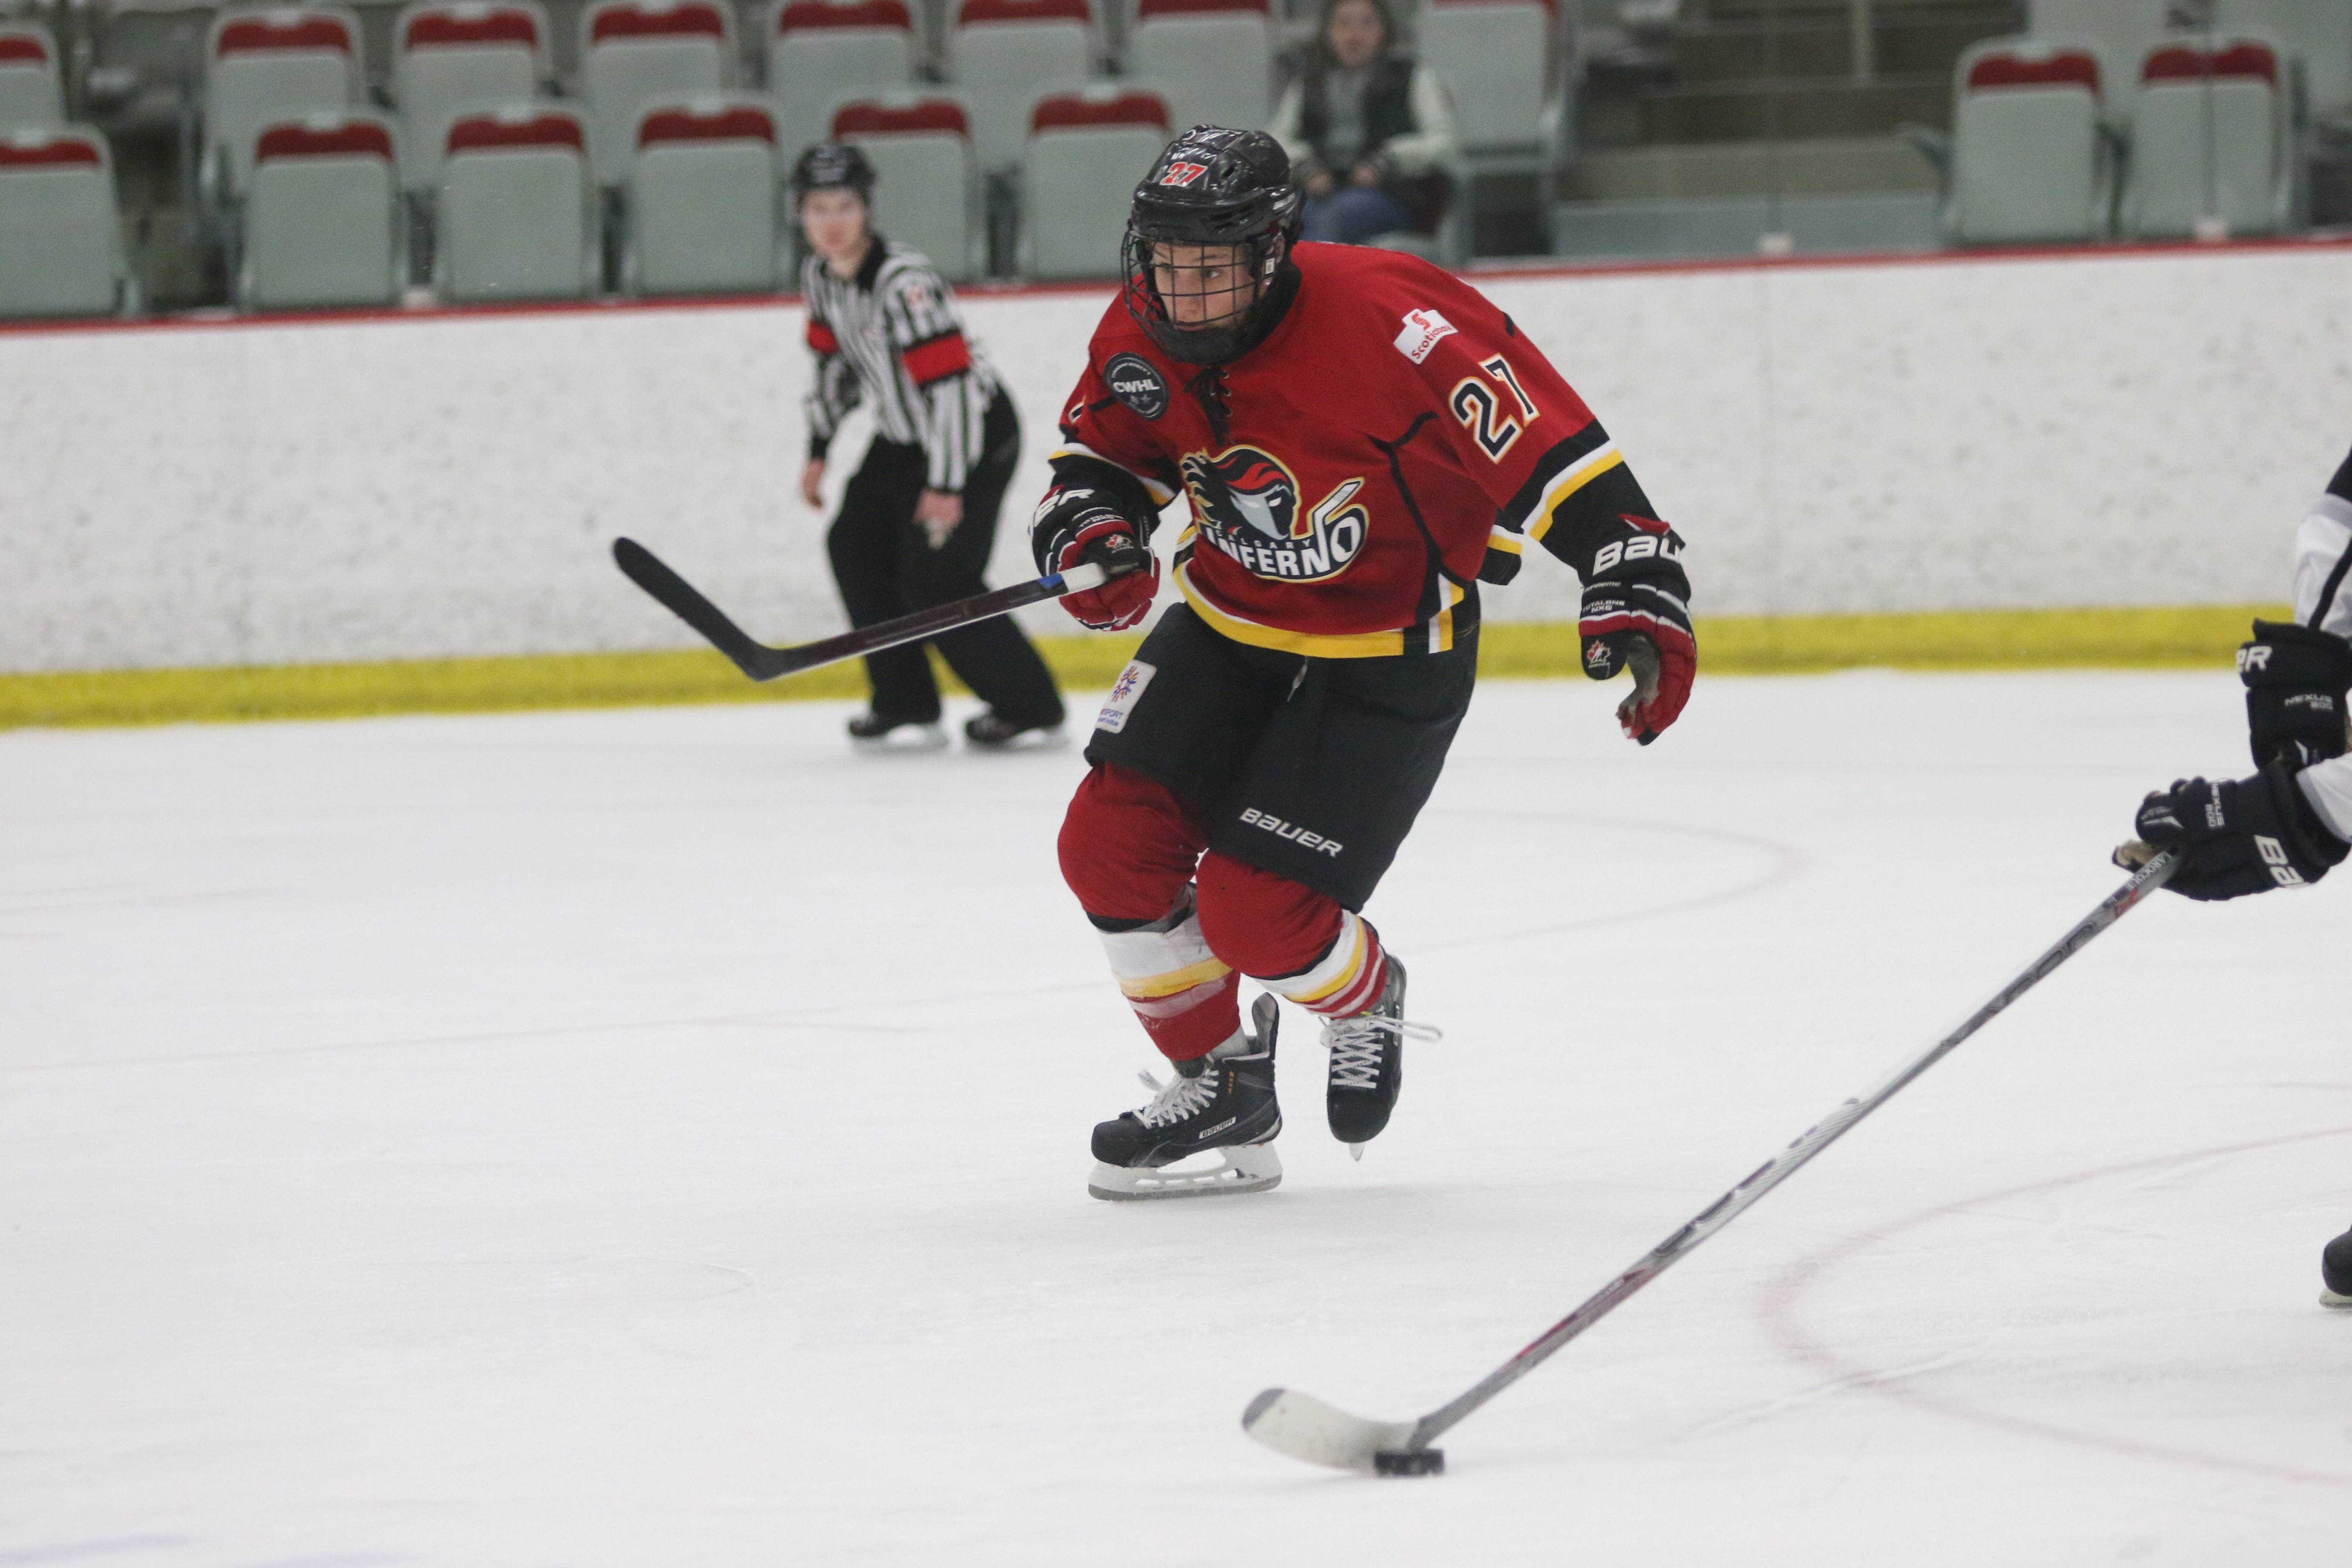 Jillian Saulnier earned first star of the game for her effort, including a goal, Friday night in the Inferno's first-ever Clarkson Cup playoff win.